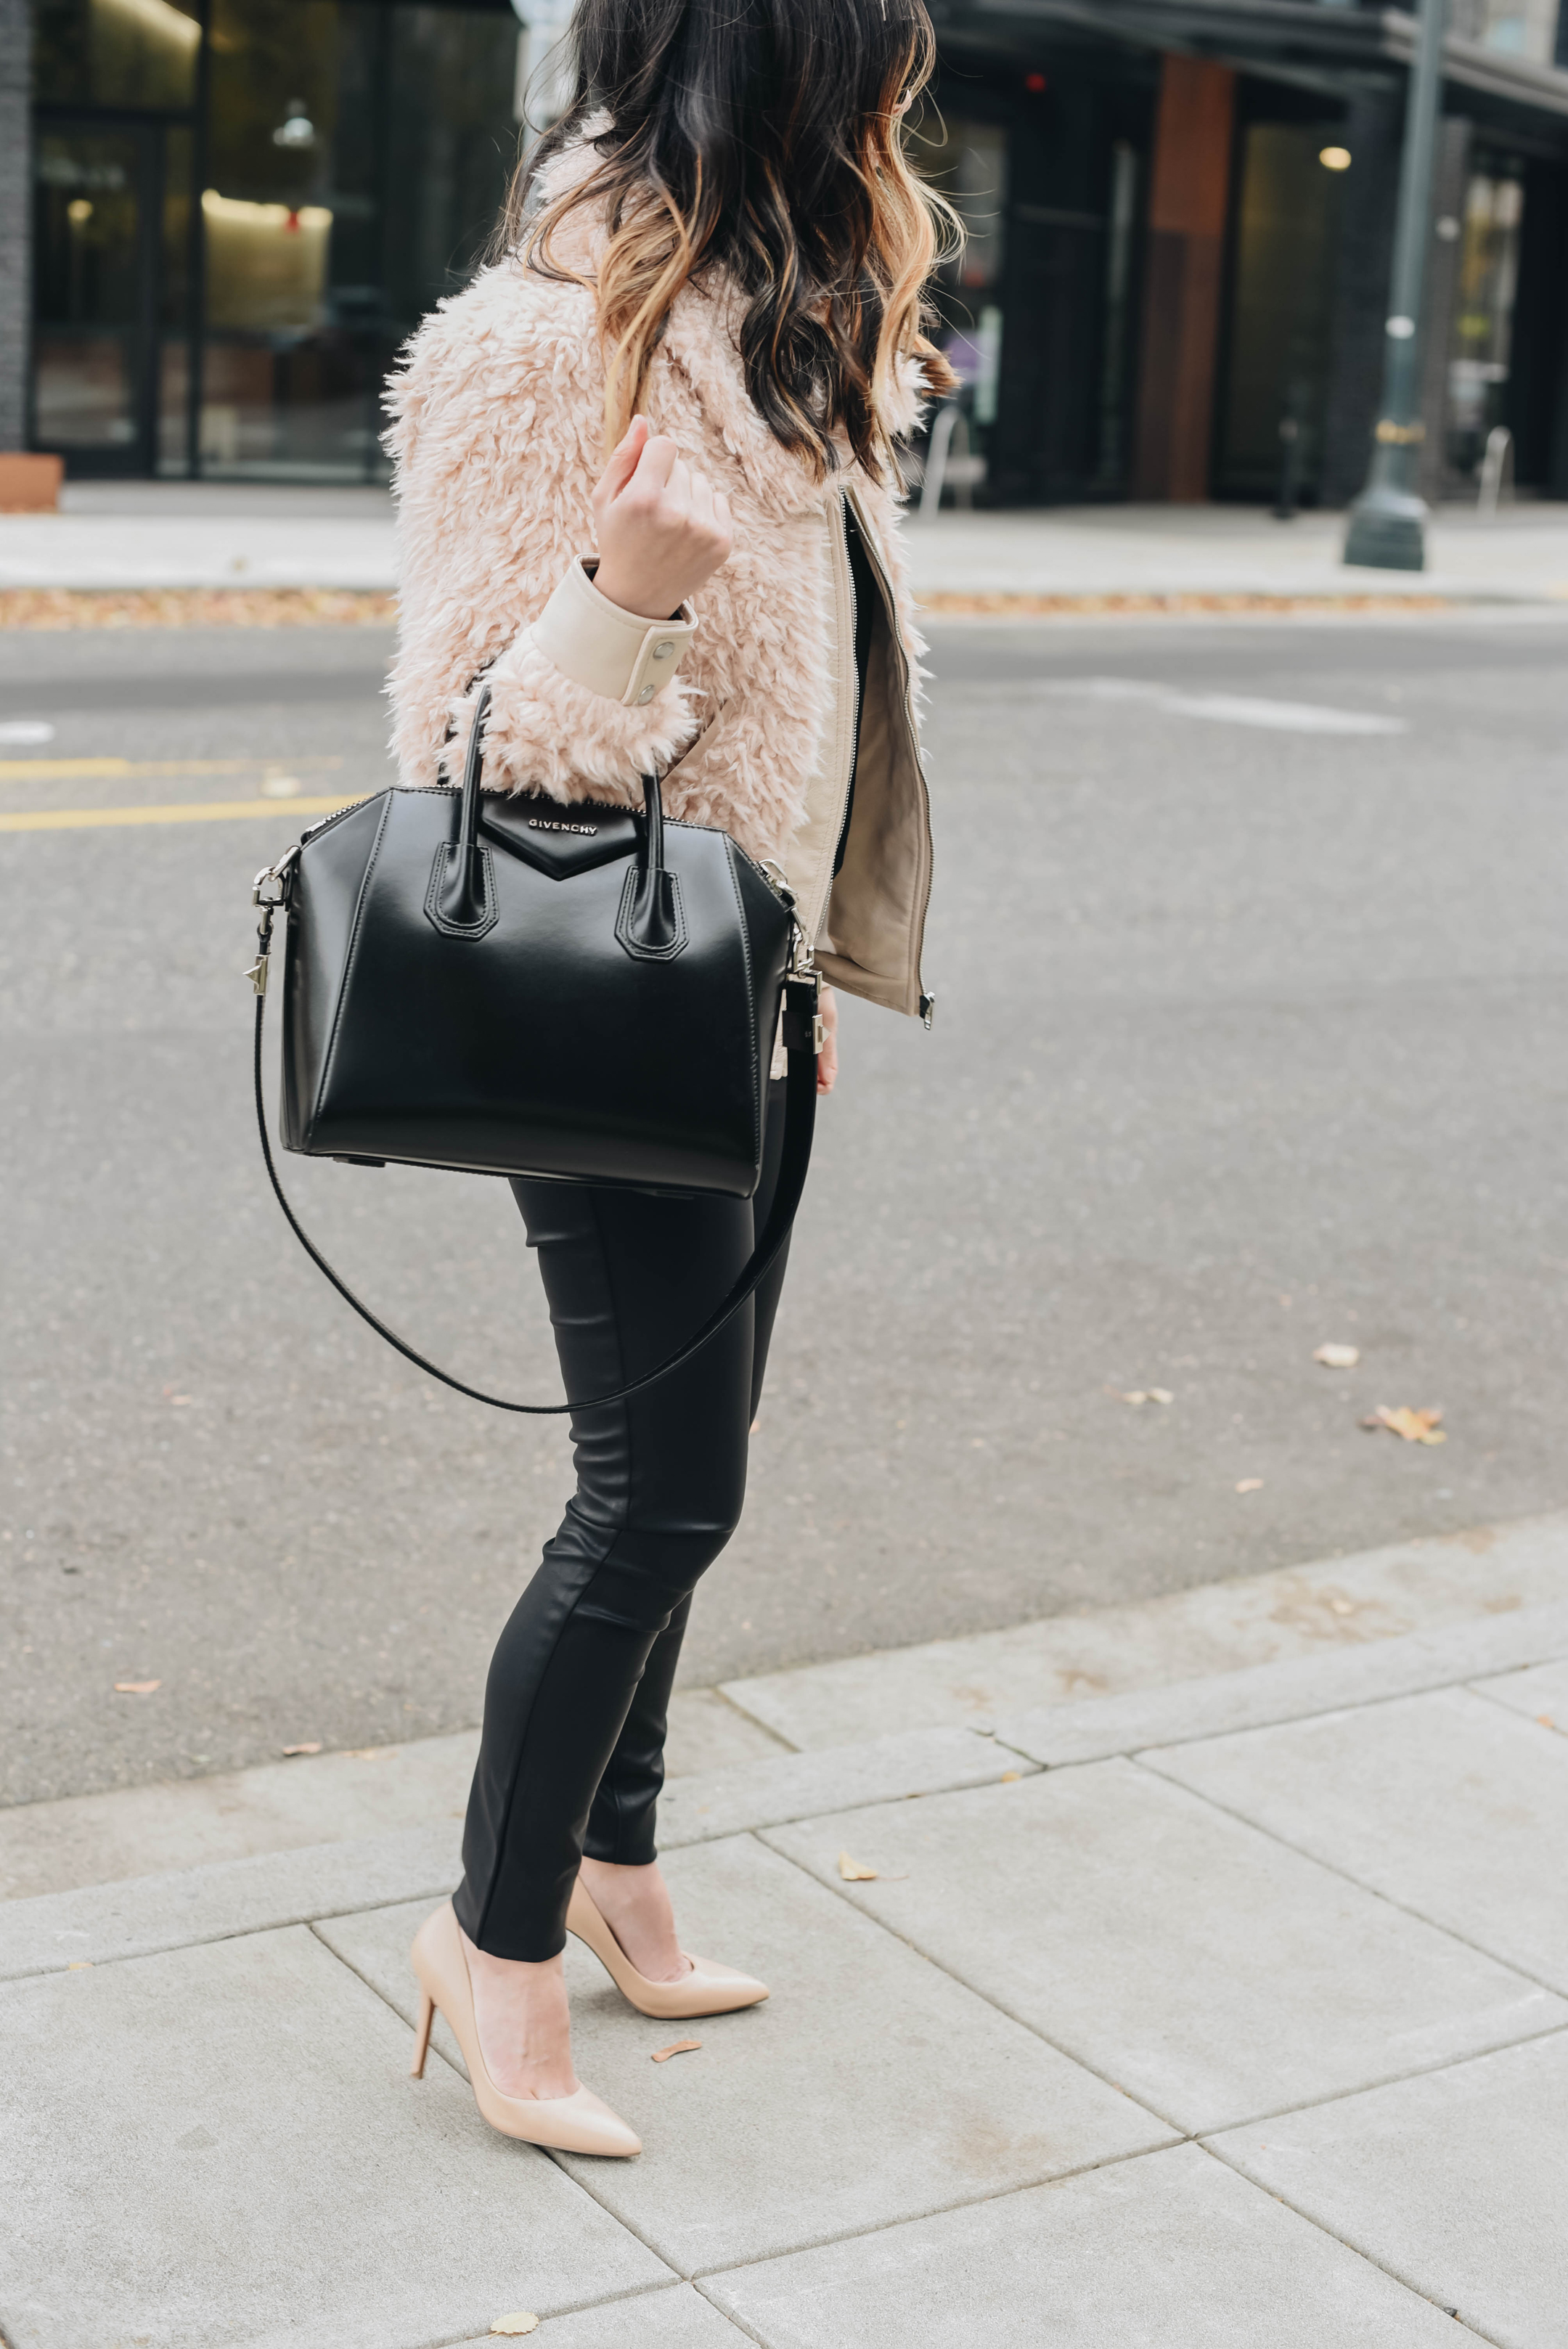 How to wear faux leather for the holidays